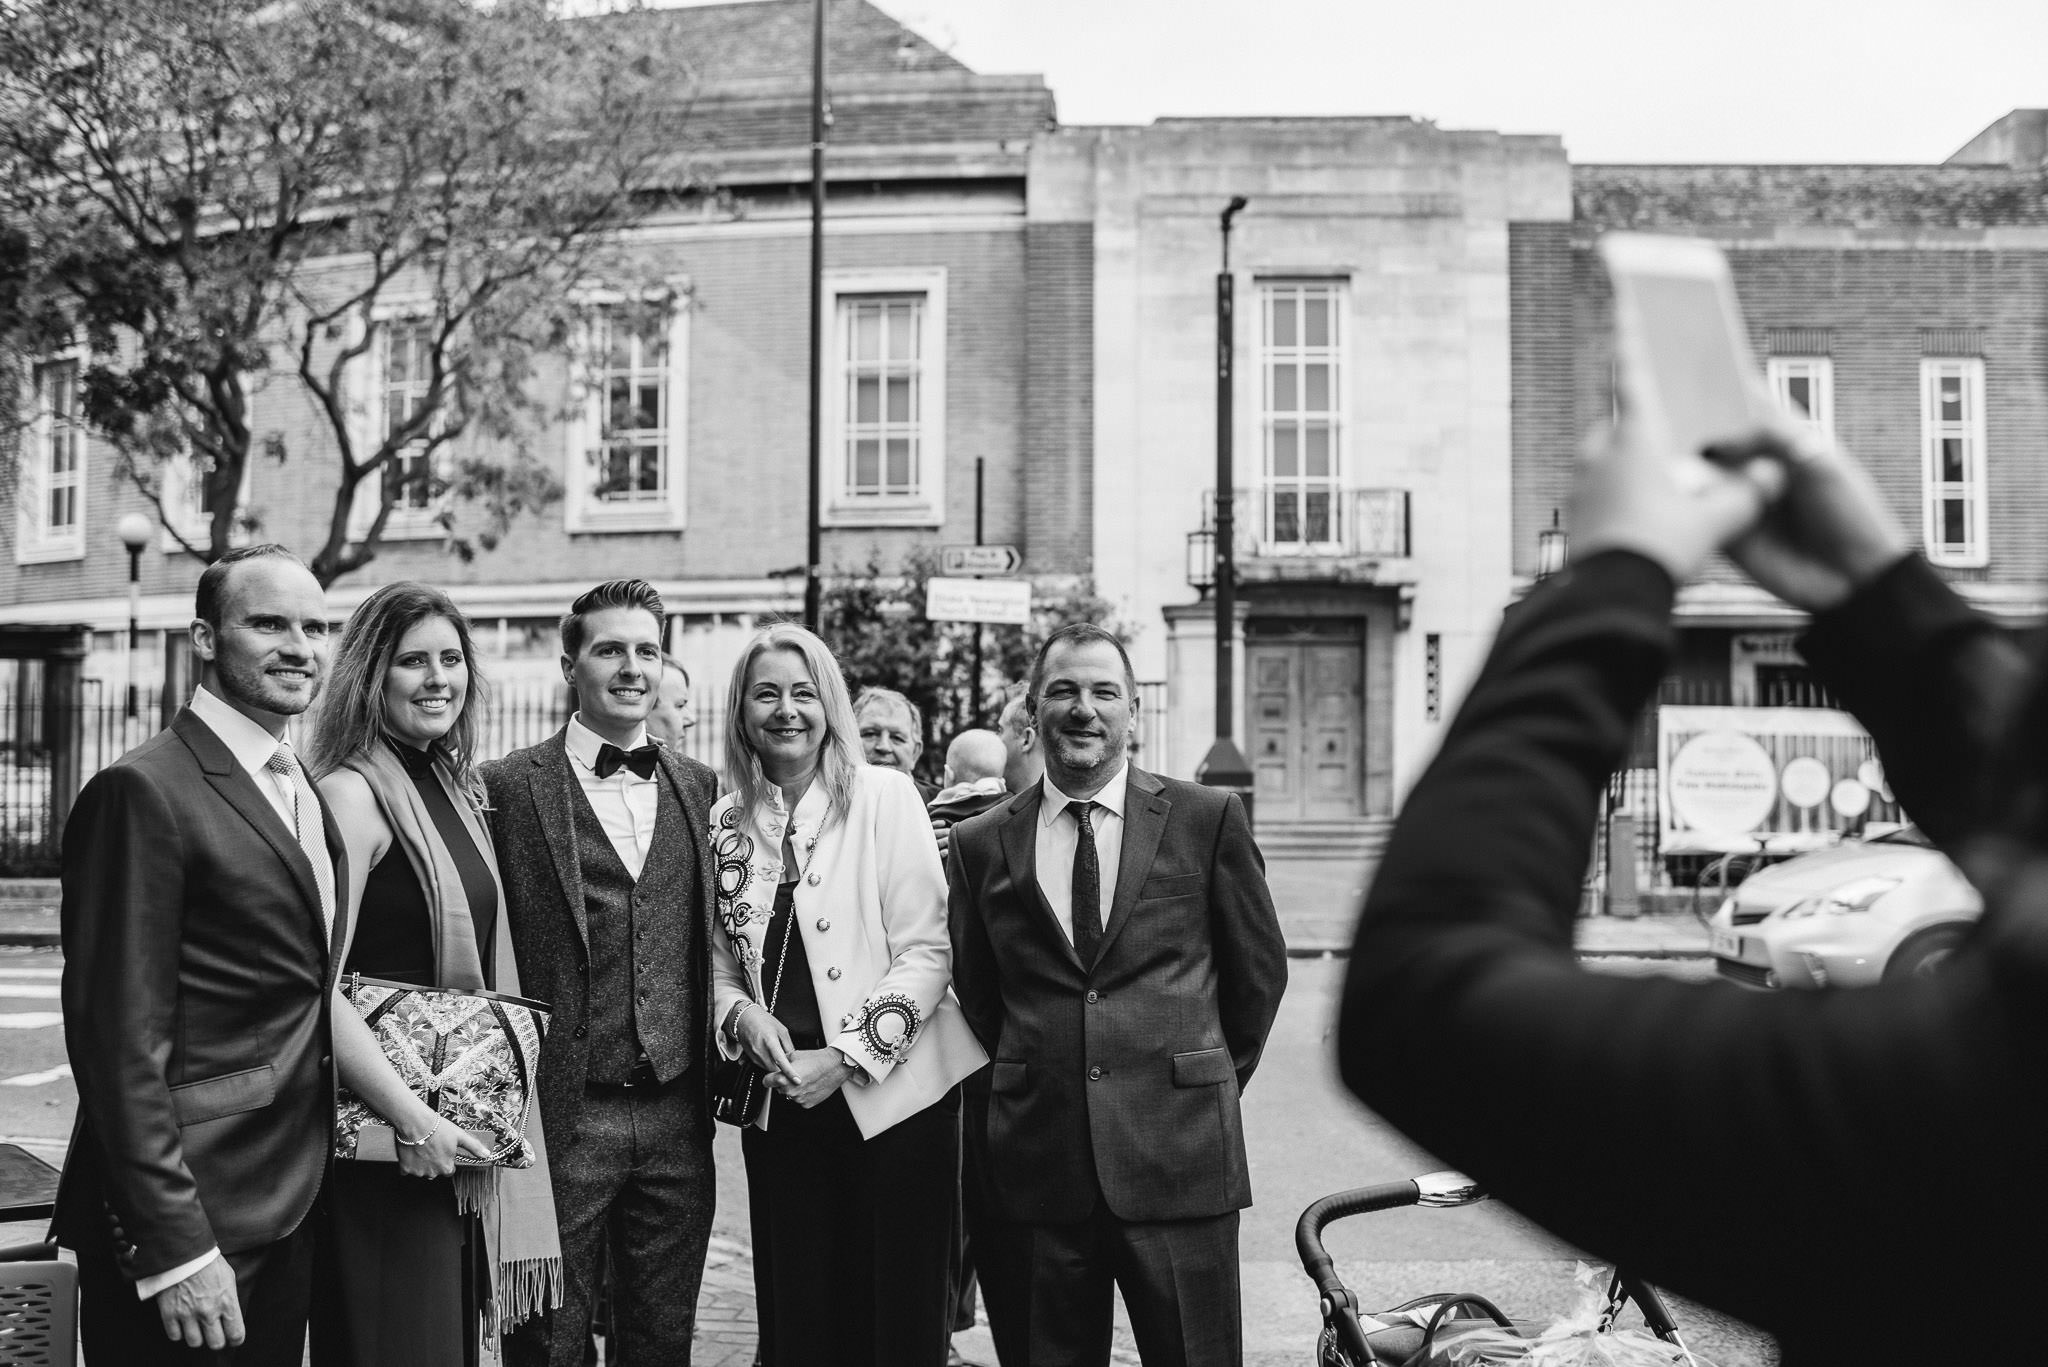 Guests outside rose and crown pub stoke newington in stoke newington town hall wedding by creative and alternative london wedding photographer the shannons photography